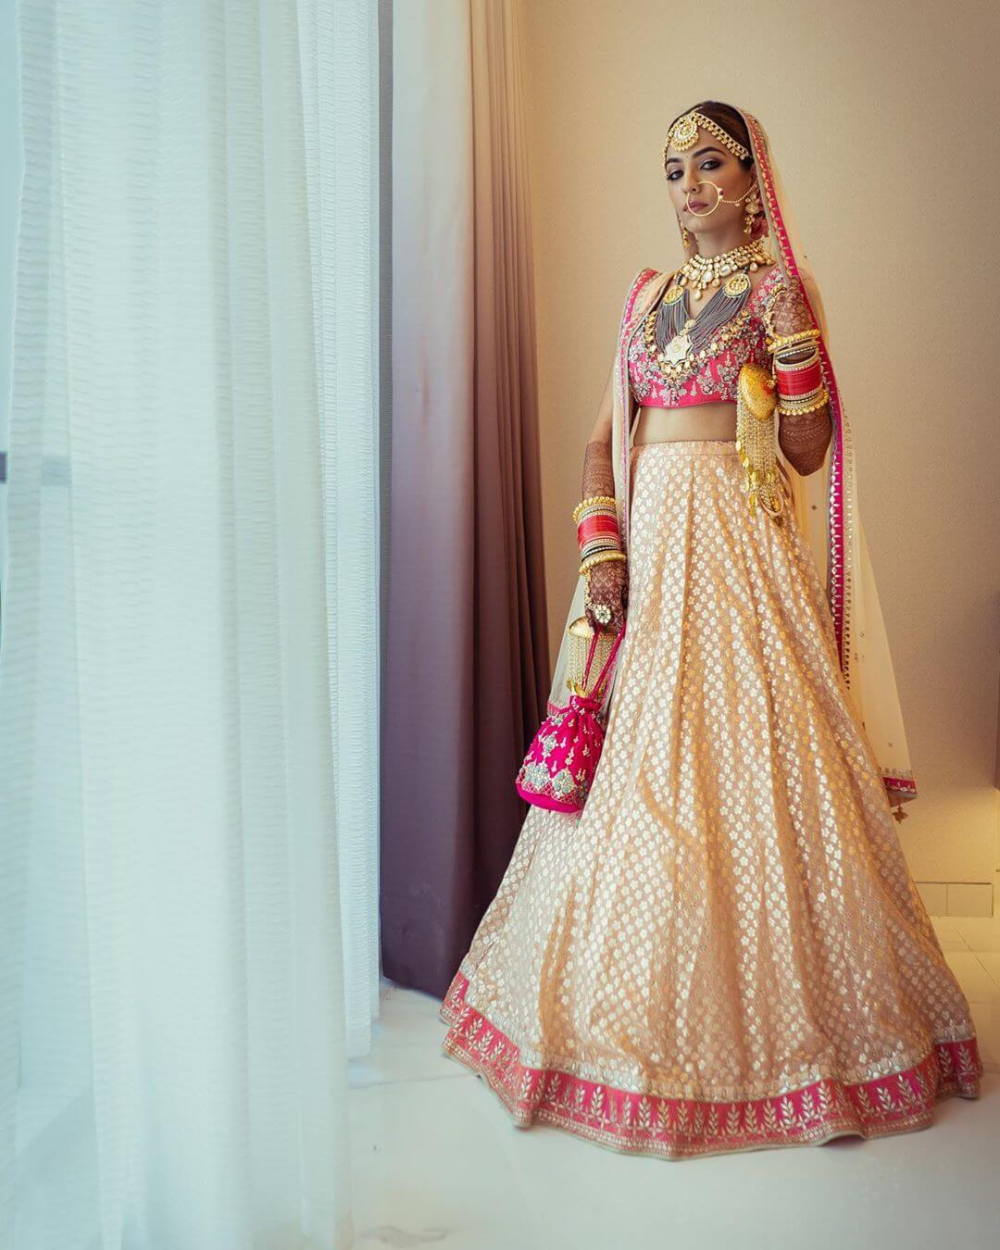 Stunning Anita Dongre Lehengas Spotted On Real Brides In 2020 Lehenga Color Combinations Pink Bridal Lehenga Beautiful Outfits